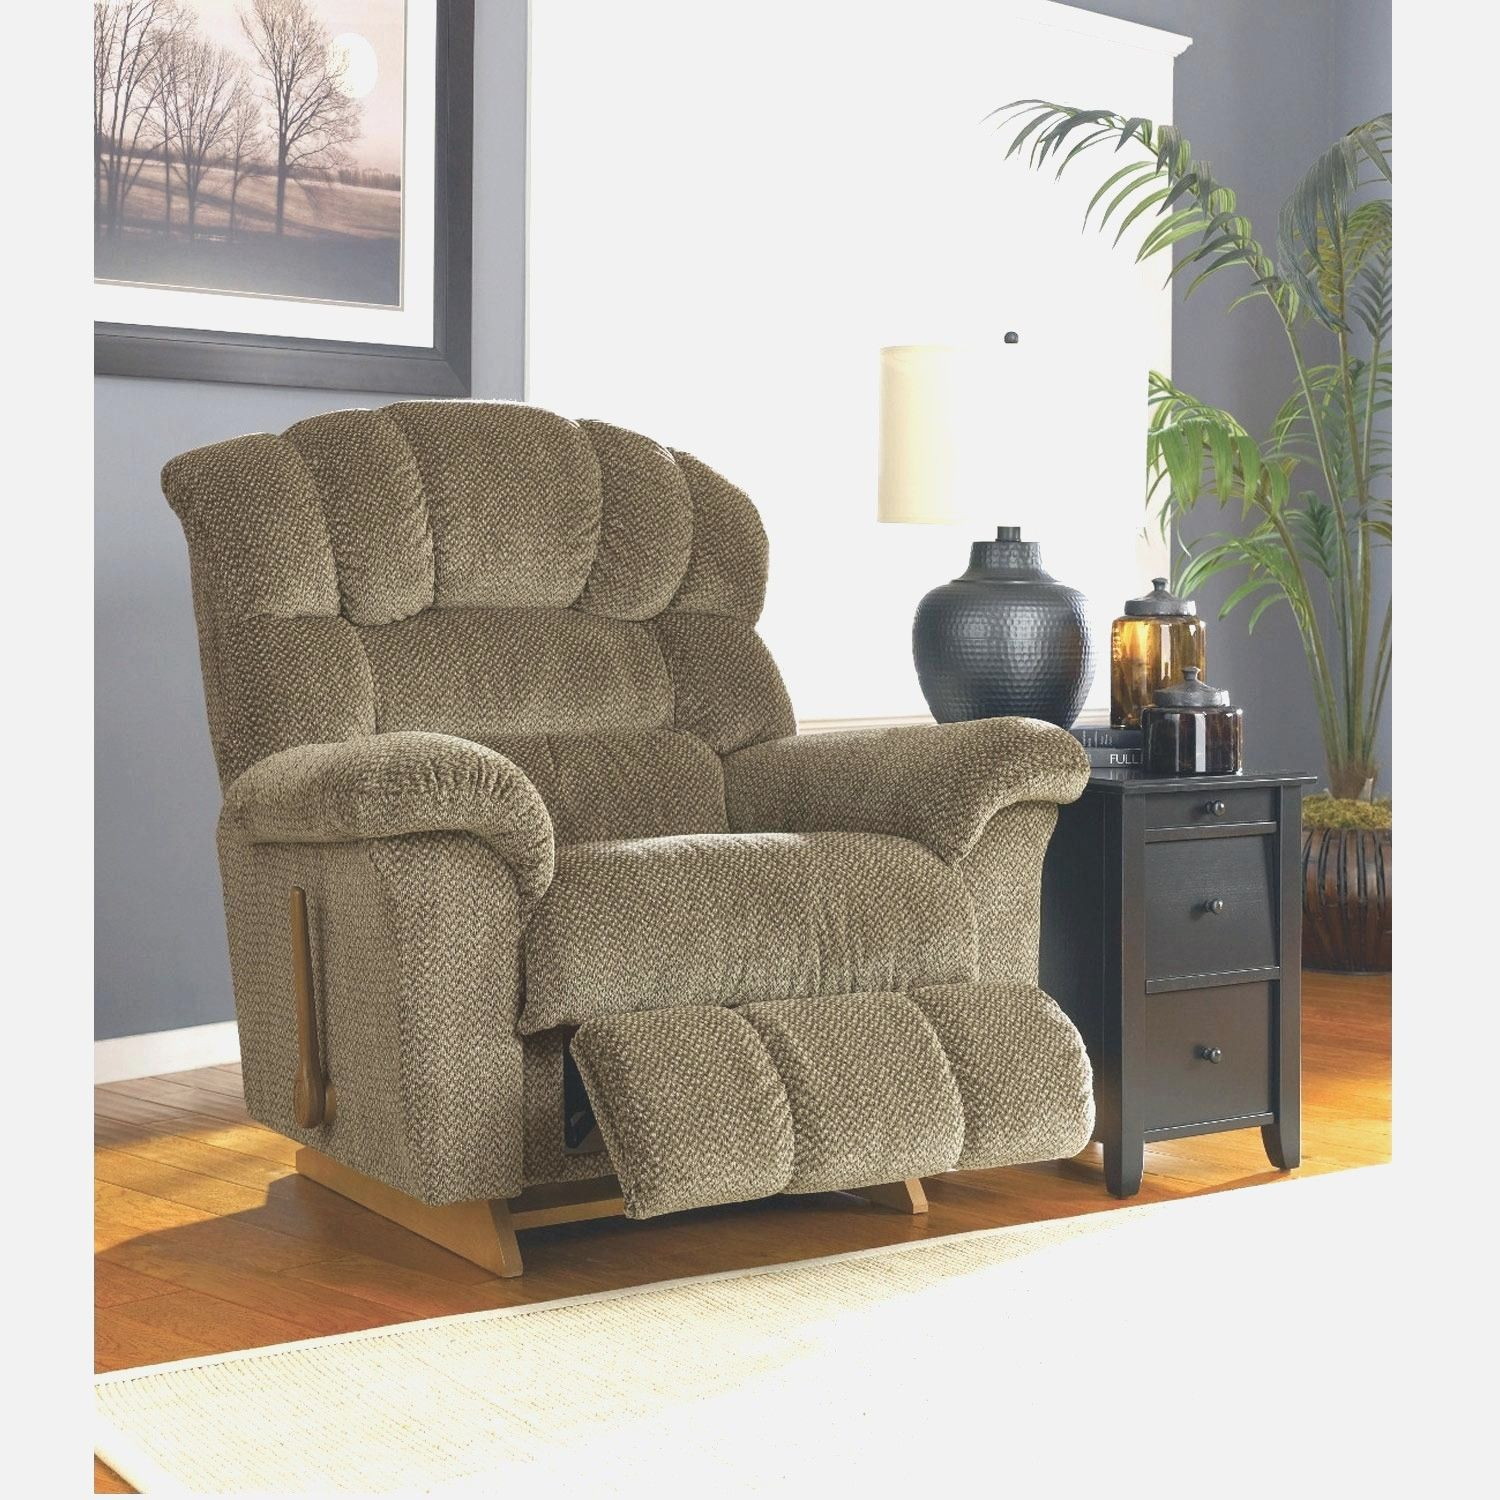 Lazy Boy Sleeper Chair Lazy Boy Living Room Furniture La Z Boy Living Room Chairs La Z